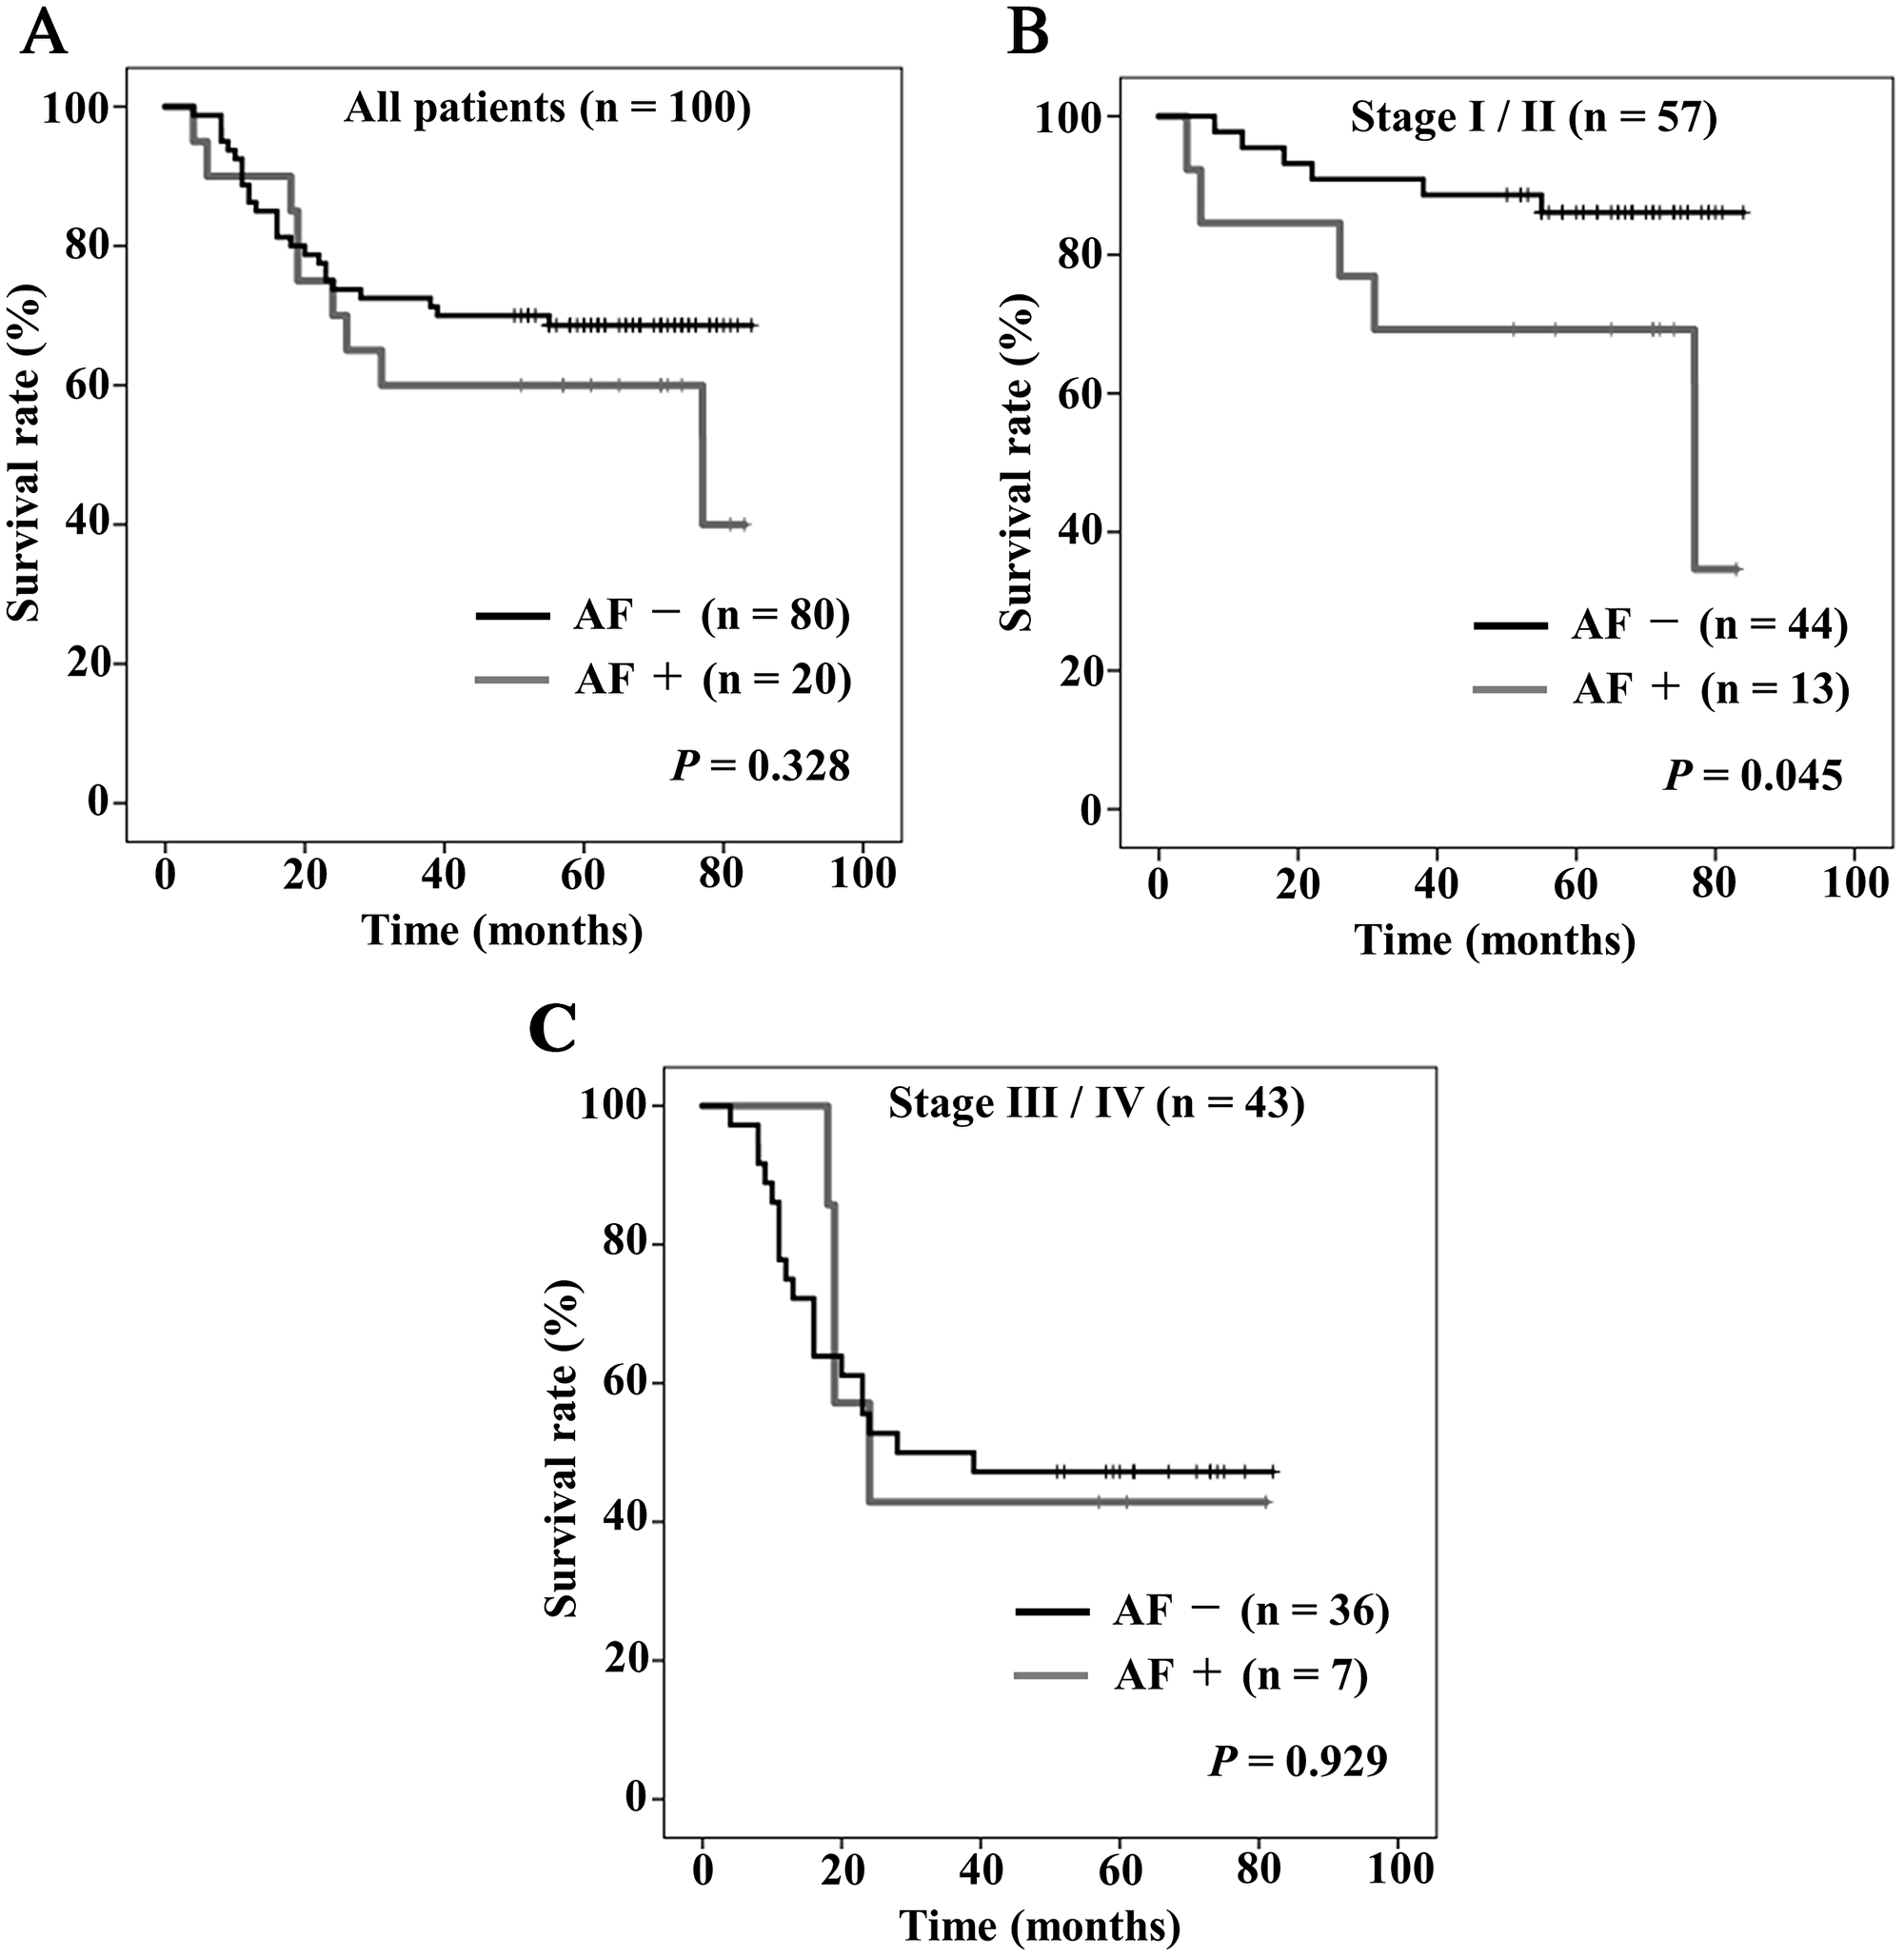 Kaplan–Meier curves of overall survival stratified by the presence (gray) or absence (black) of postoperative atrial fibrillation (AF).